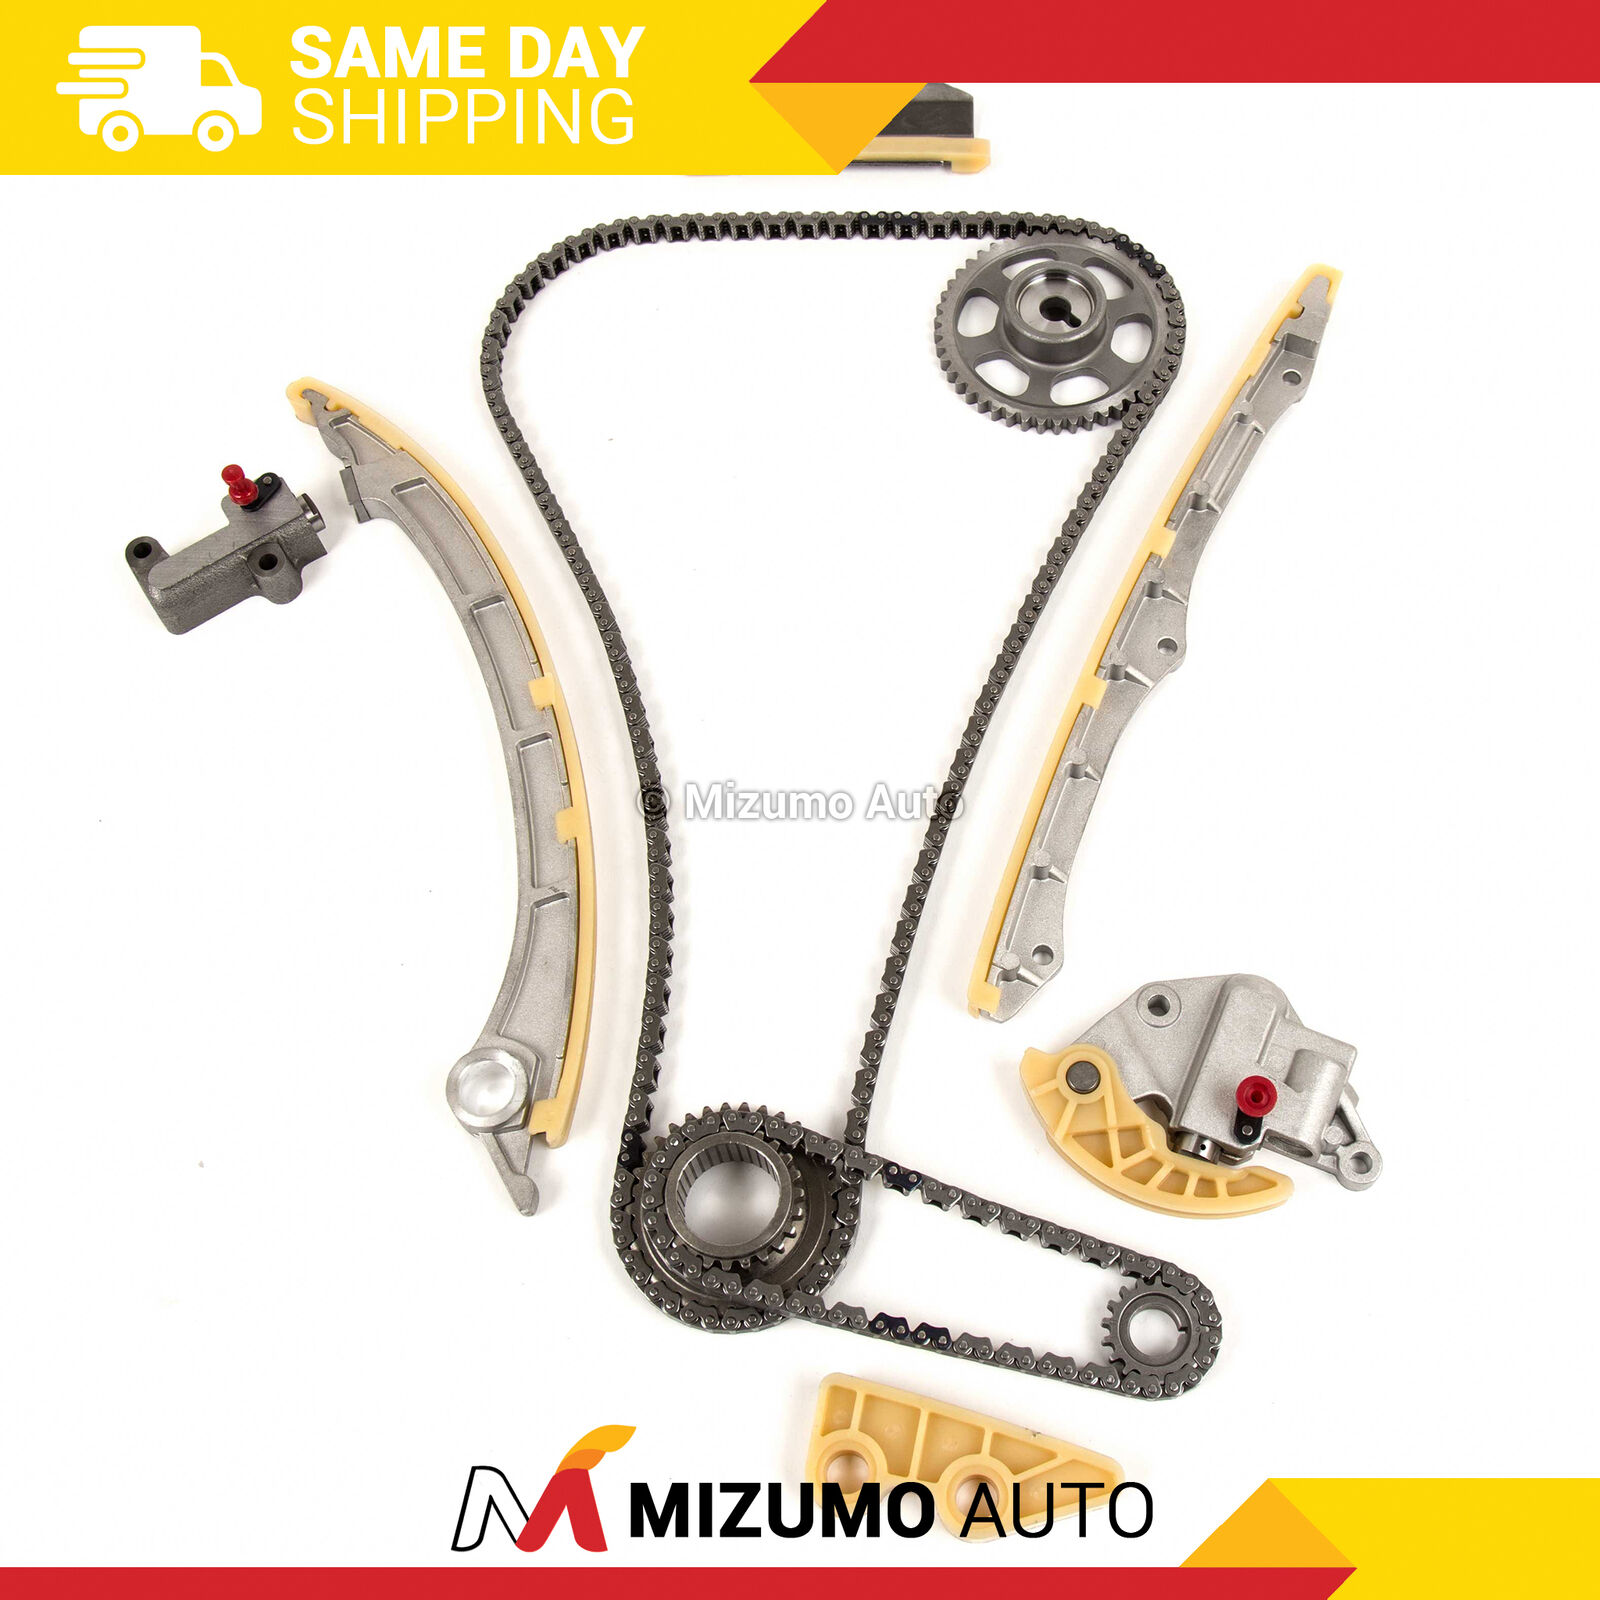 Timing Chain Kit Fit 08 15 Acura Tsx Ilx Honda Accord Civic Crv 24 Engine Belt Diagram 1 Of 6free Shipping